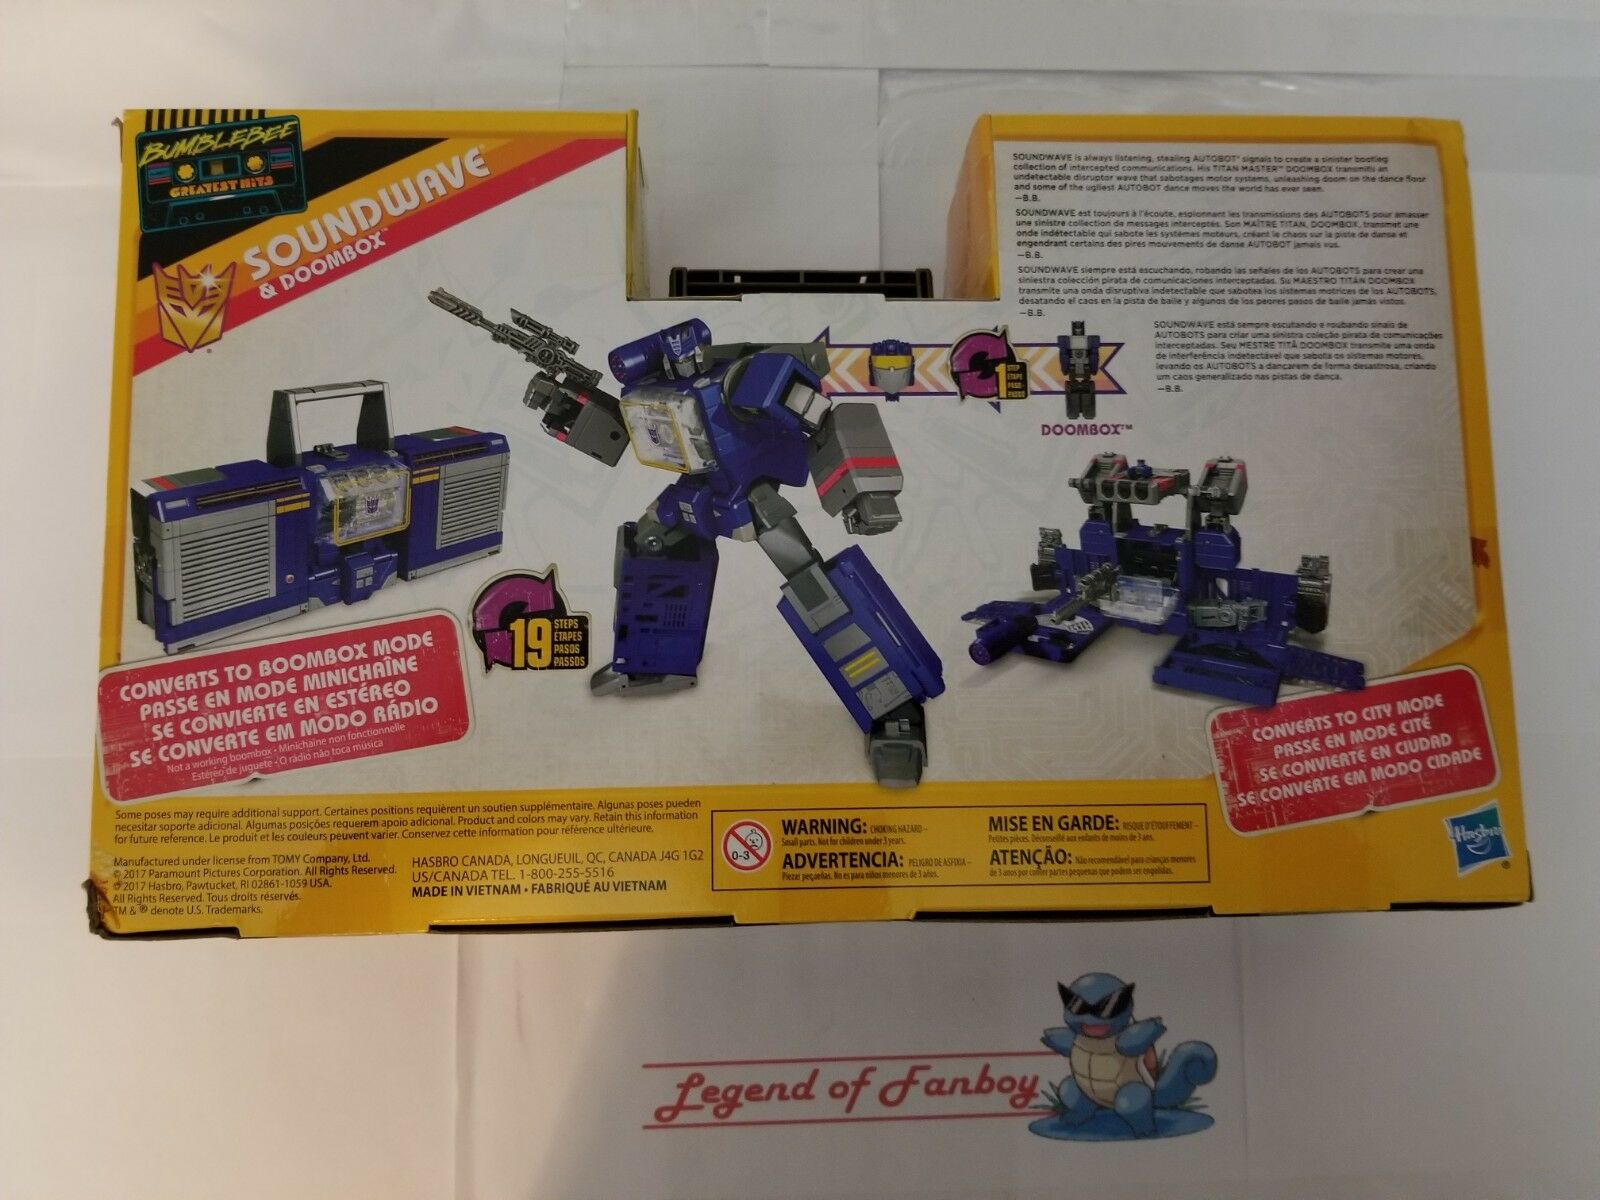 New     Transformers - Soundwave & Doombox - BumbleBee Greatest Hits 58cfa7